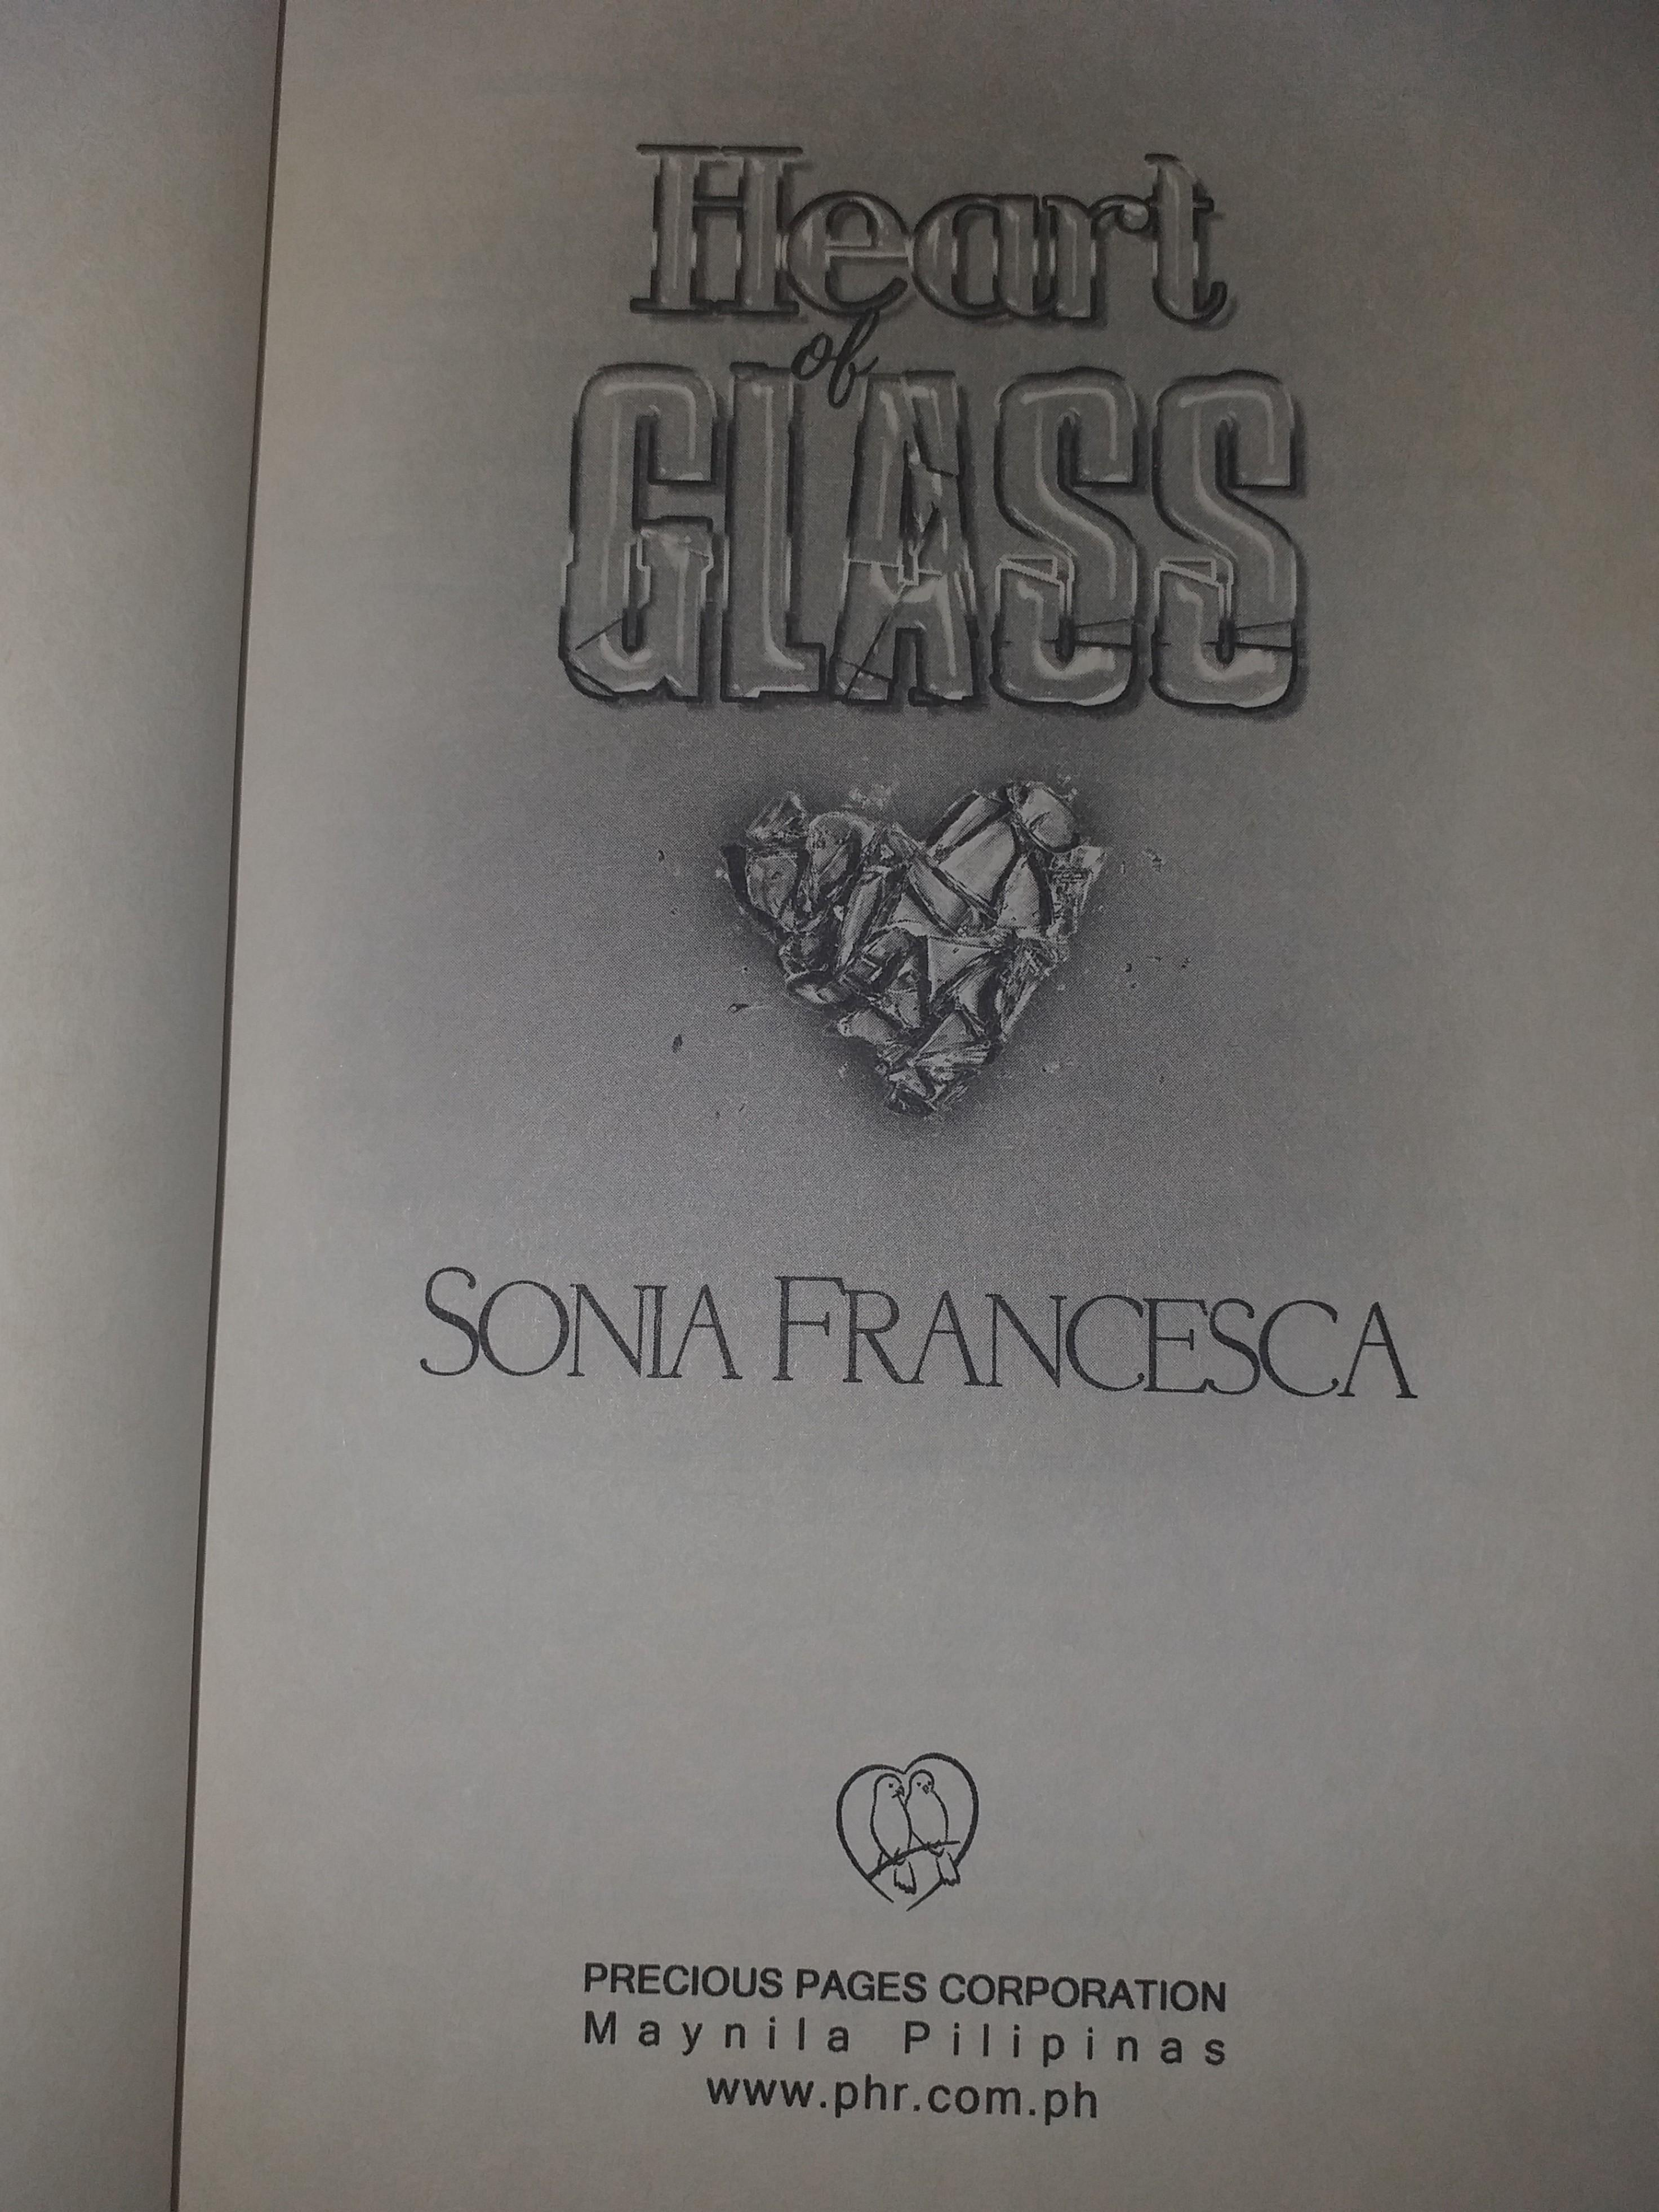 SONIA FRANCESCA'S HEART OF GLASS, LIMITED COLLECTOR'S EDITION FOR SALE!